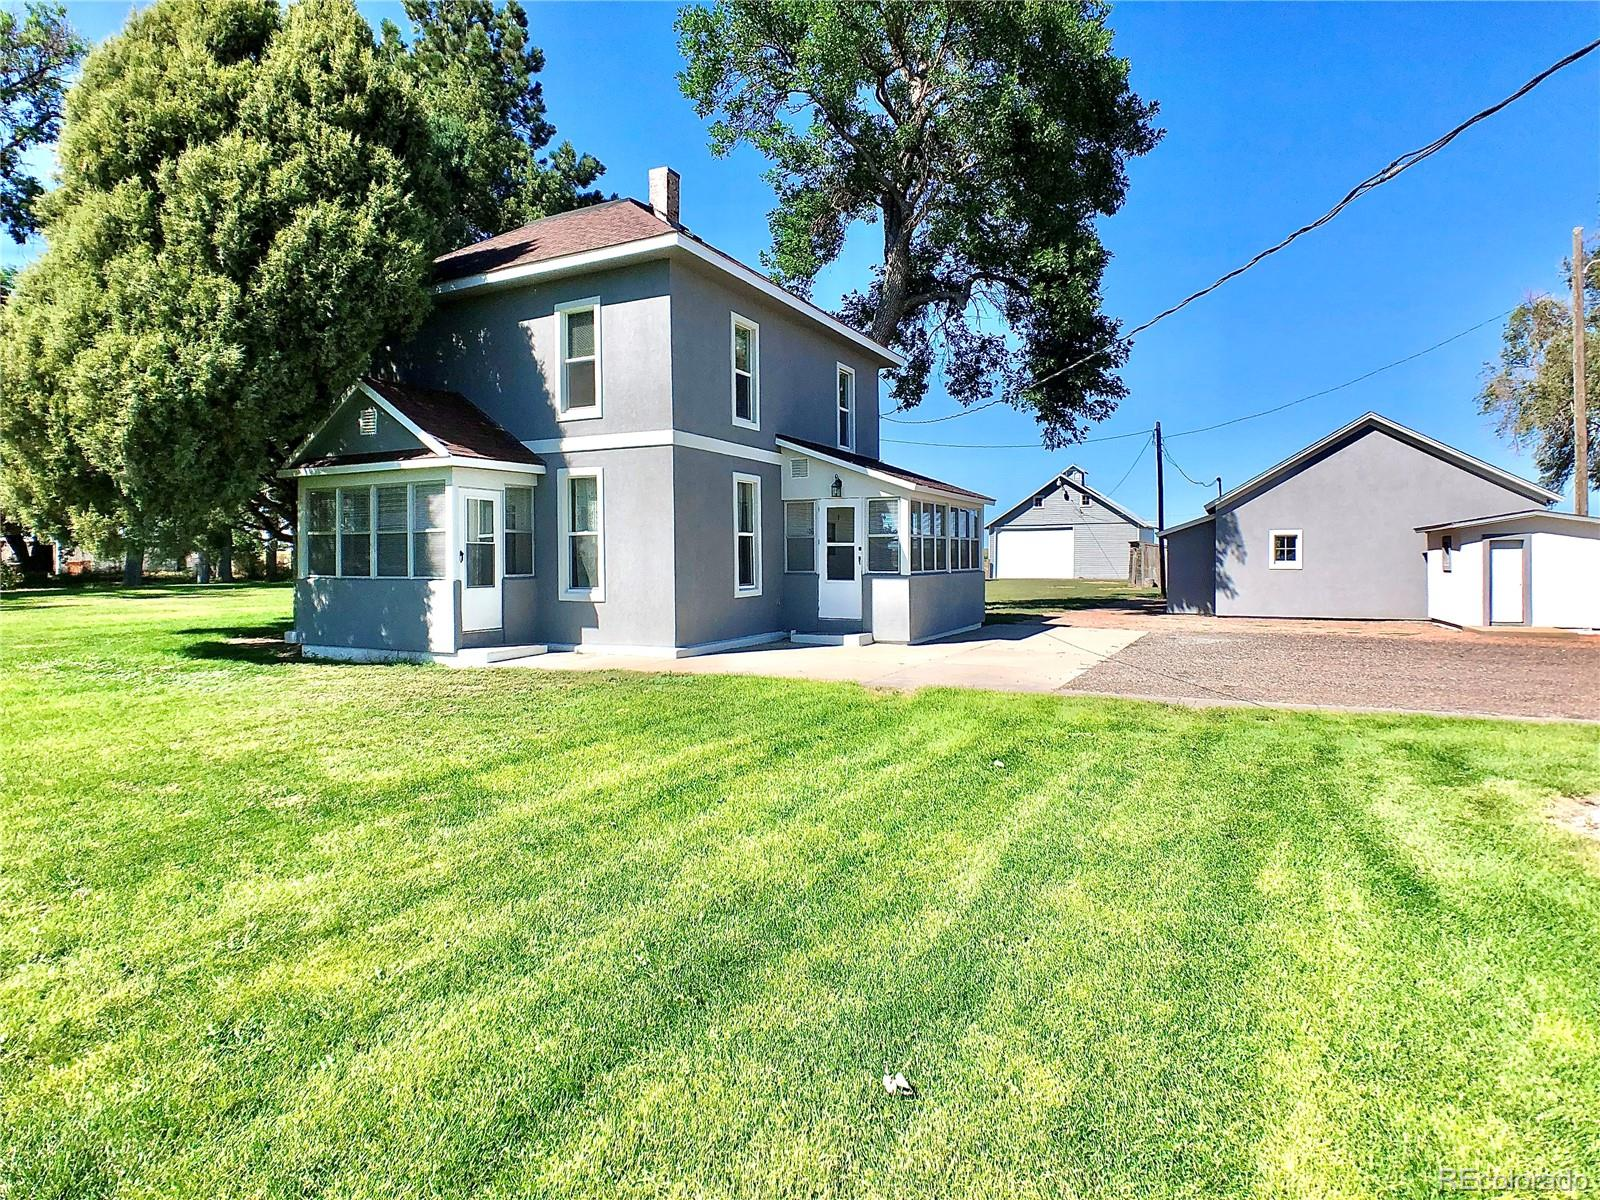 22531 US State Highway 34, Fort Morgan, CO 80701 - Fort Morgan, CO real estate listing